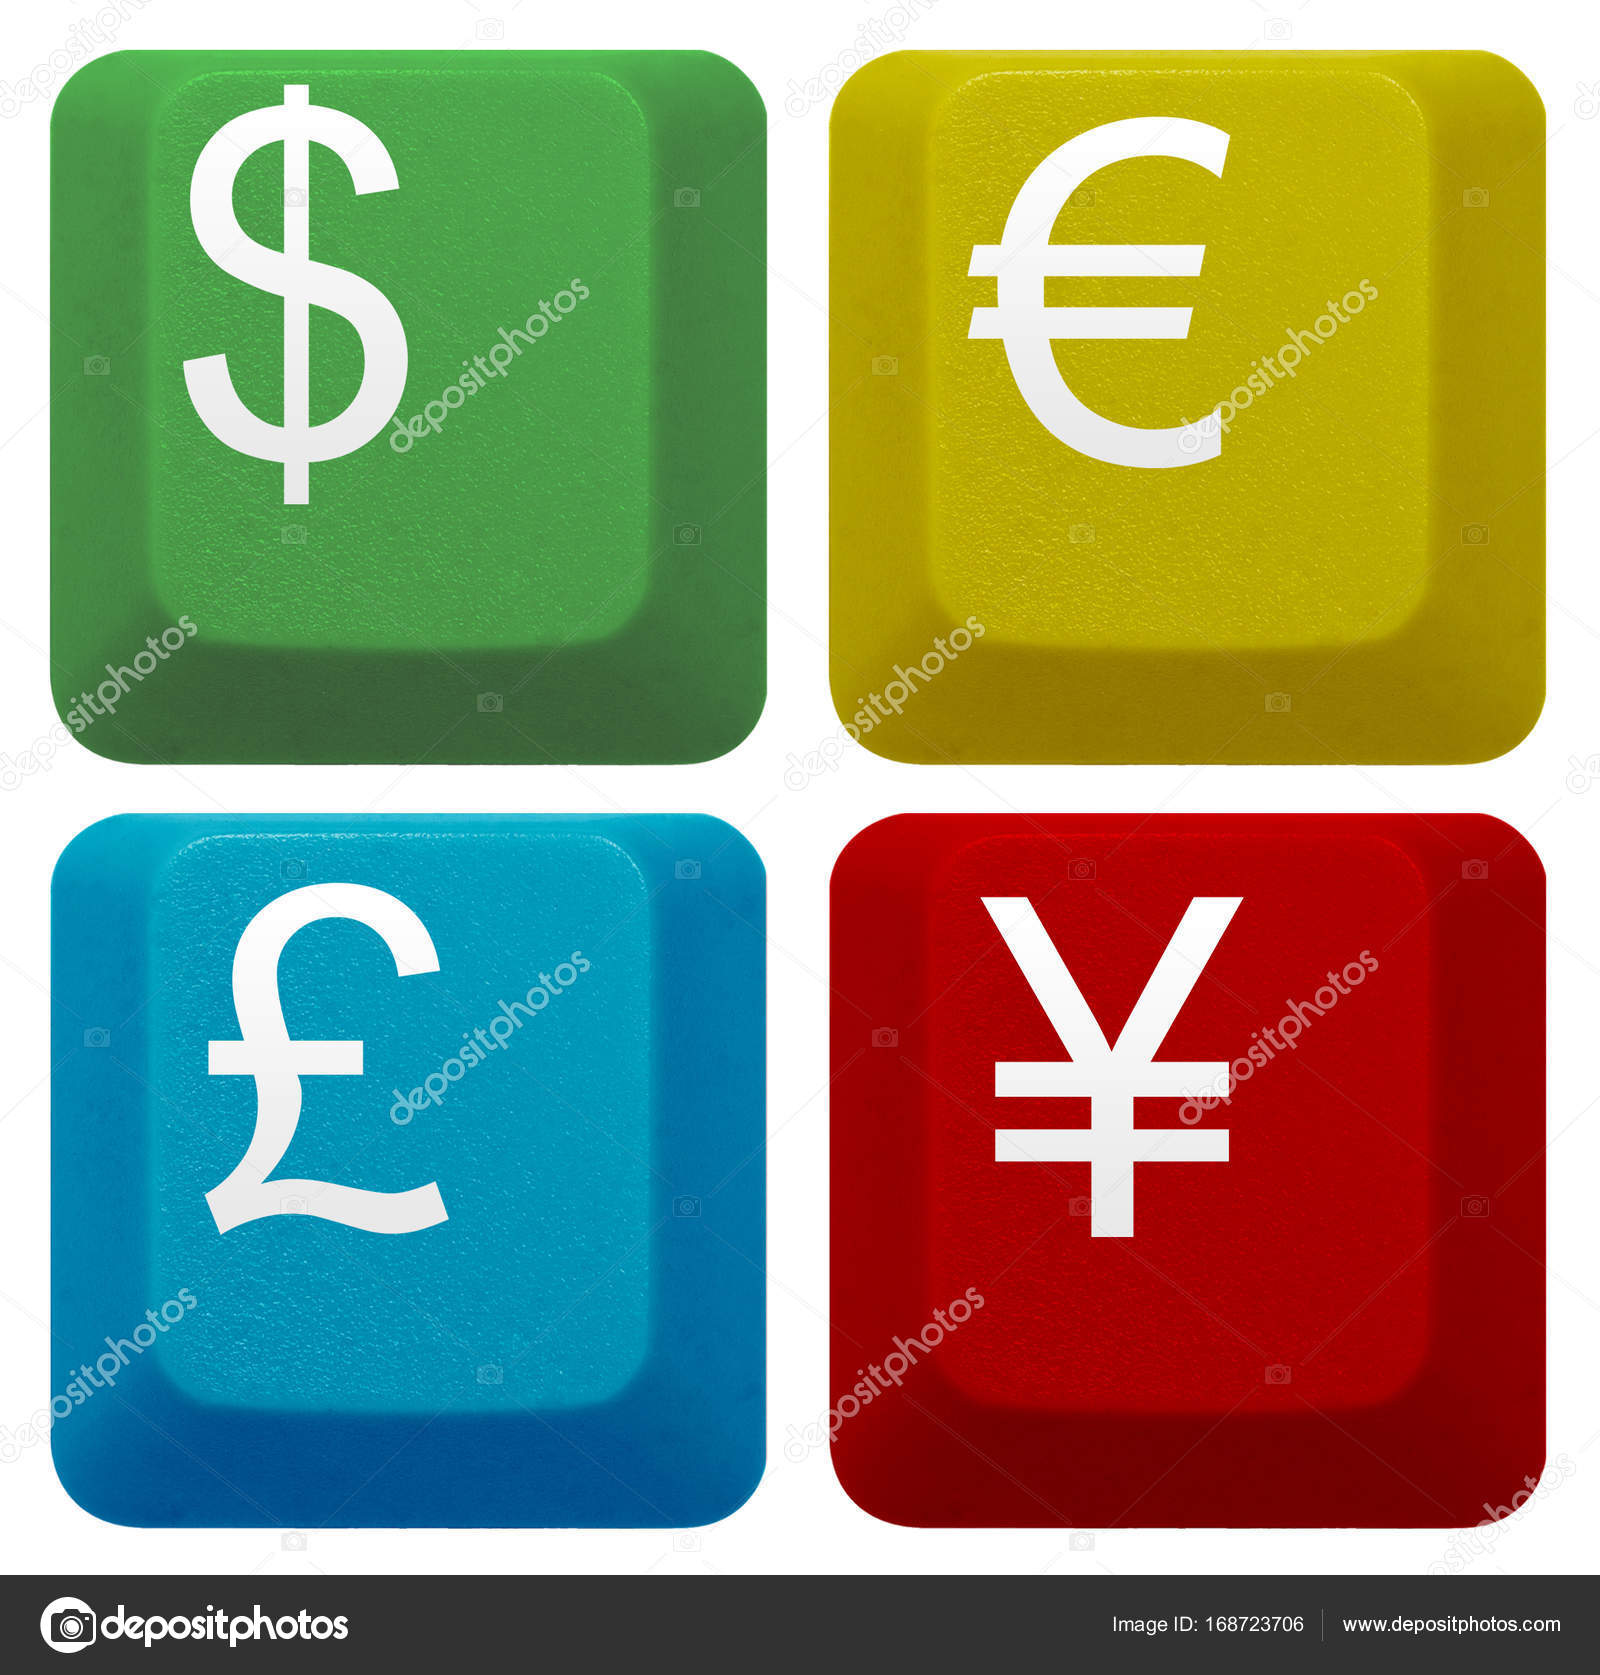 Set of computer keyboard key with dollar euro pound and yen curr set of computer keyboard key with dollar euro pound and yen currency symbol isolated photo by canbedone biocorpaavc